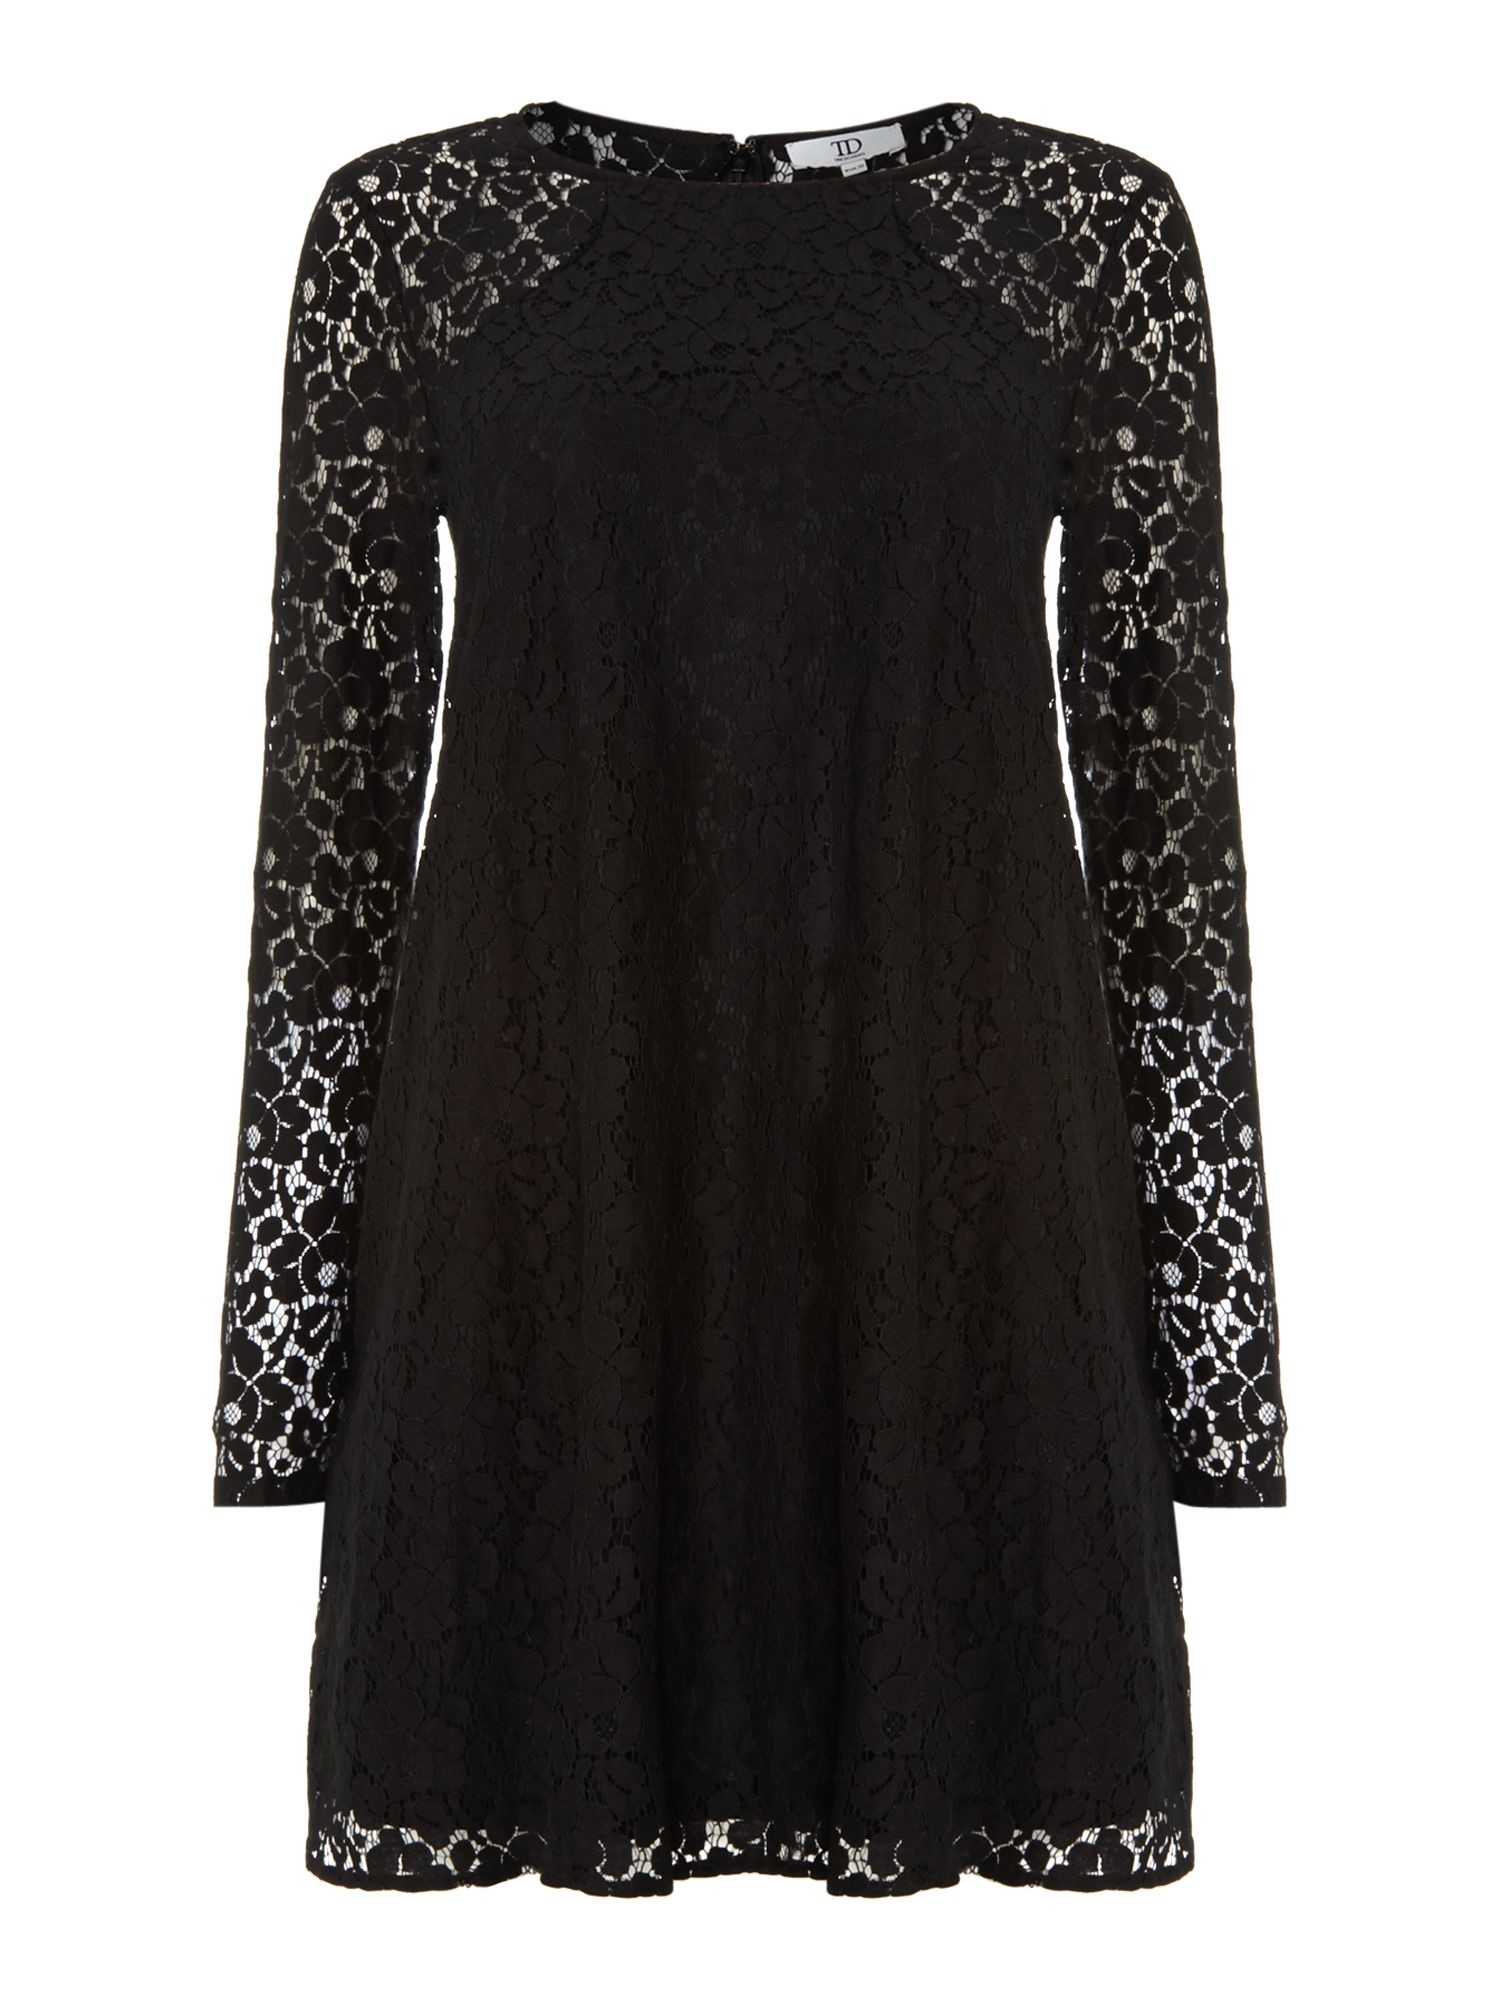 Lace layer swing dress